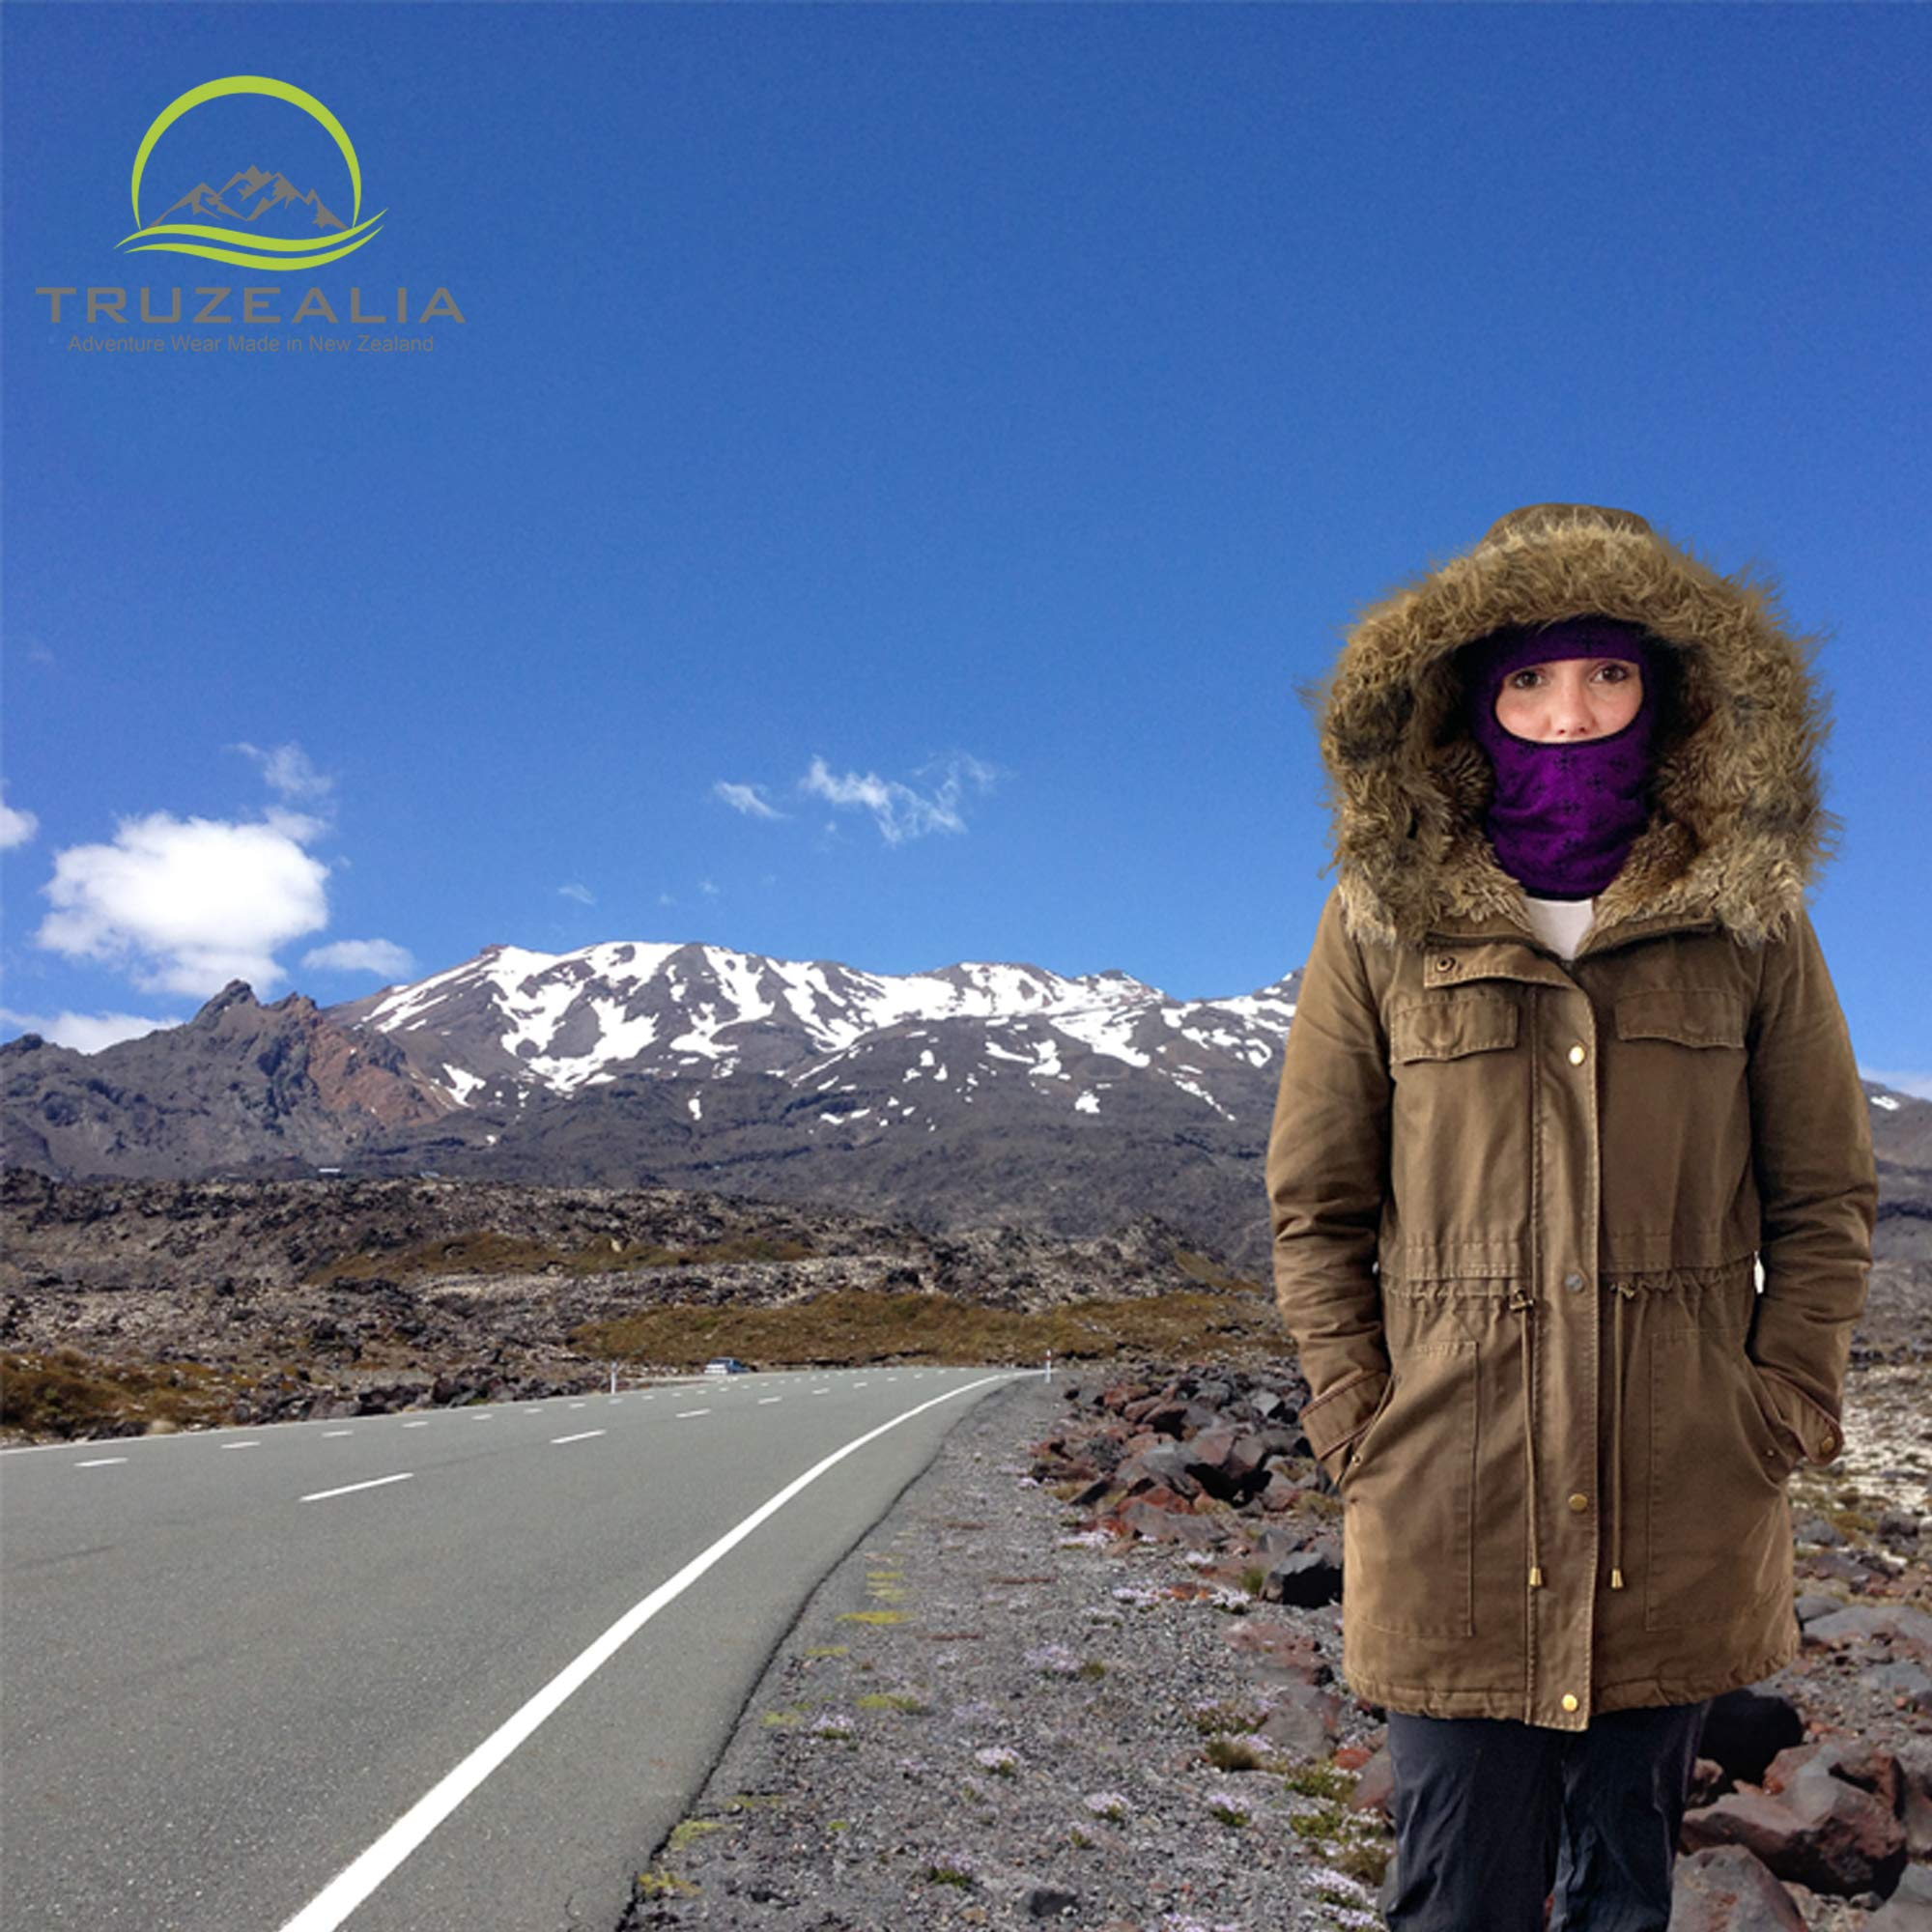 Balaclava Outdoor Wear Hat Cap Unisex New Zealand Made Merino Wool Luxurious Warmth and Soft with a Light Weight Stretchy Face Mask Stylish Unique Moisture Wicking with Thermal Properties Purple by Truzealia (Image #6)